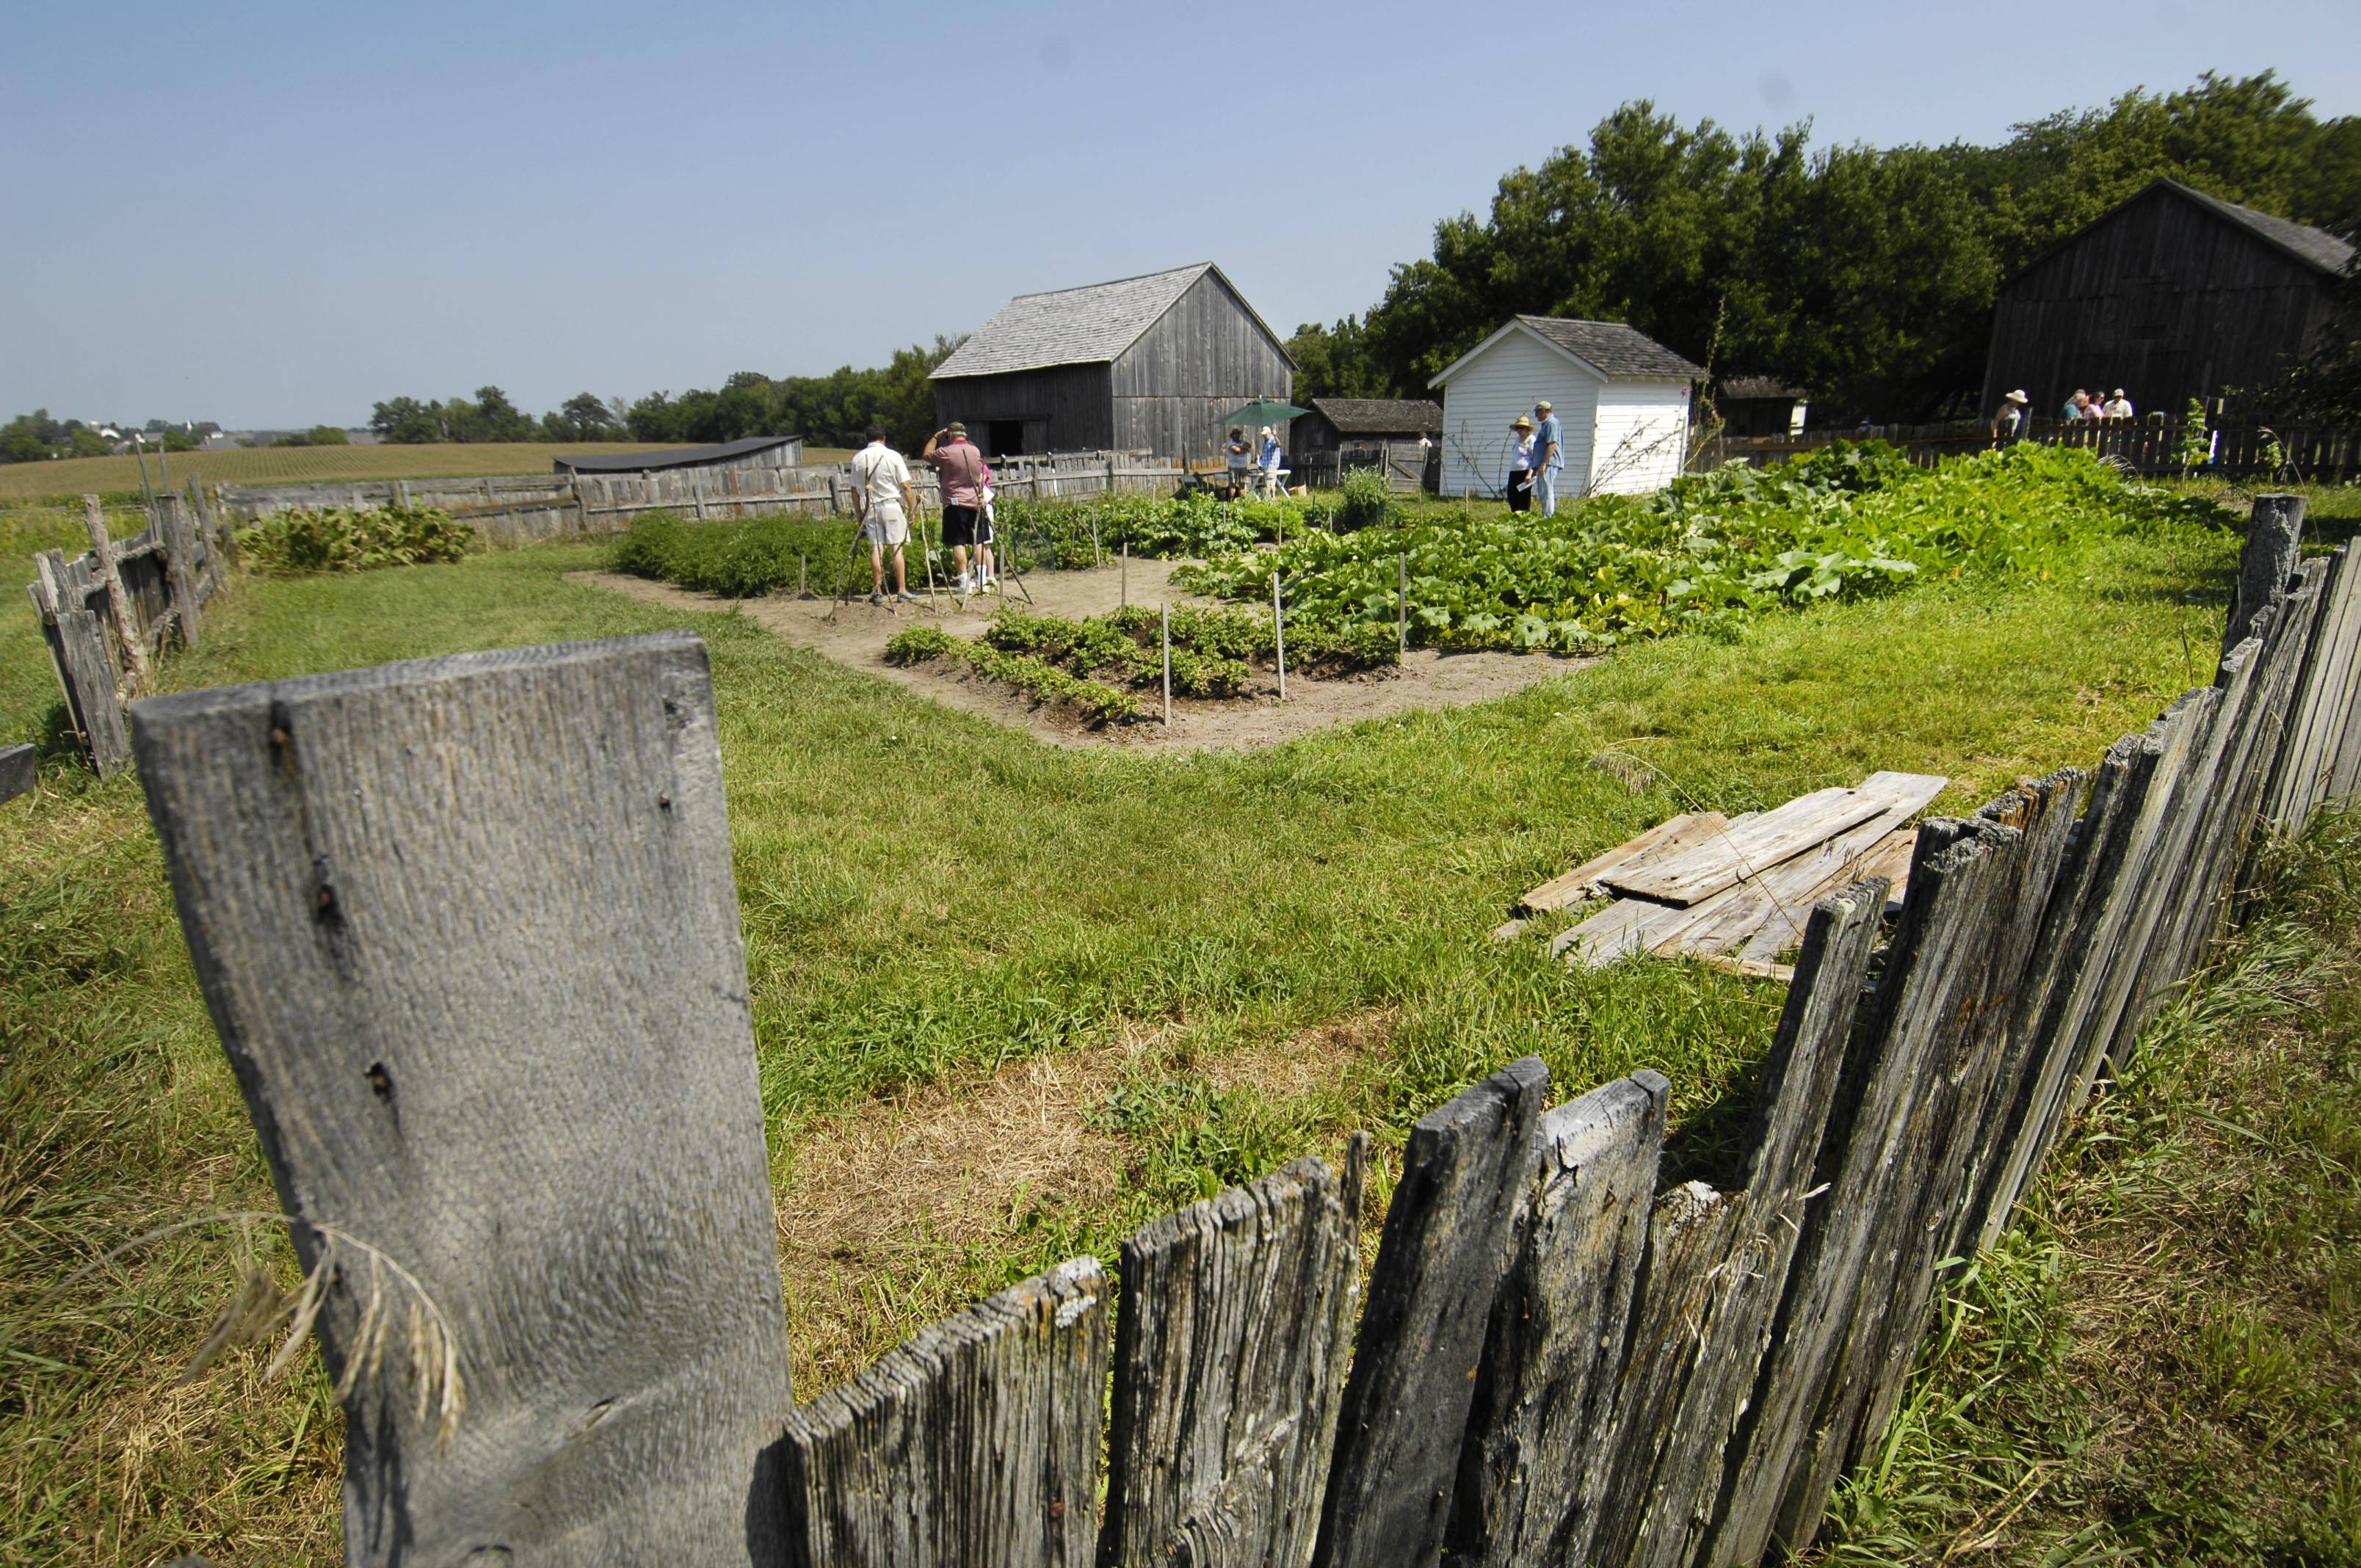 Visitors walk through a vegetable garden at the 24th annual Heirloom Garden Show at the Garfield Farm Museum in Campton Hills. The farm has the same variety of crops, flowers, vegetables and animals that were there in the 1840s.